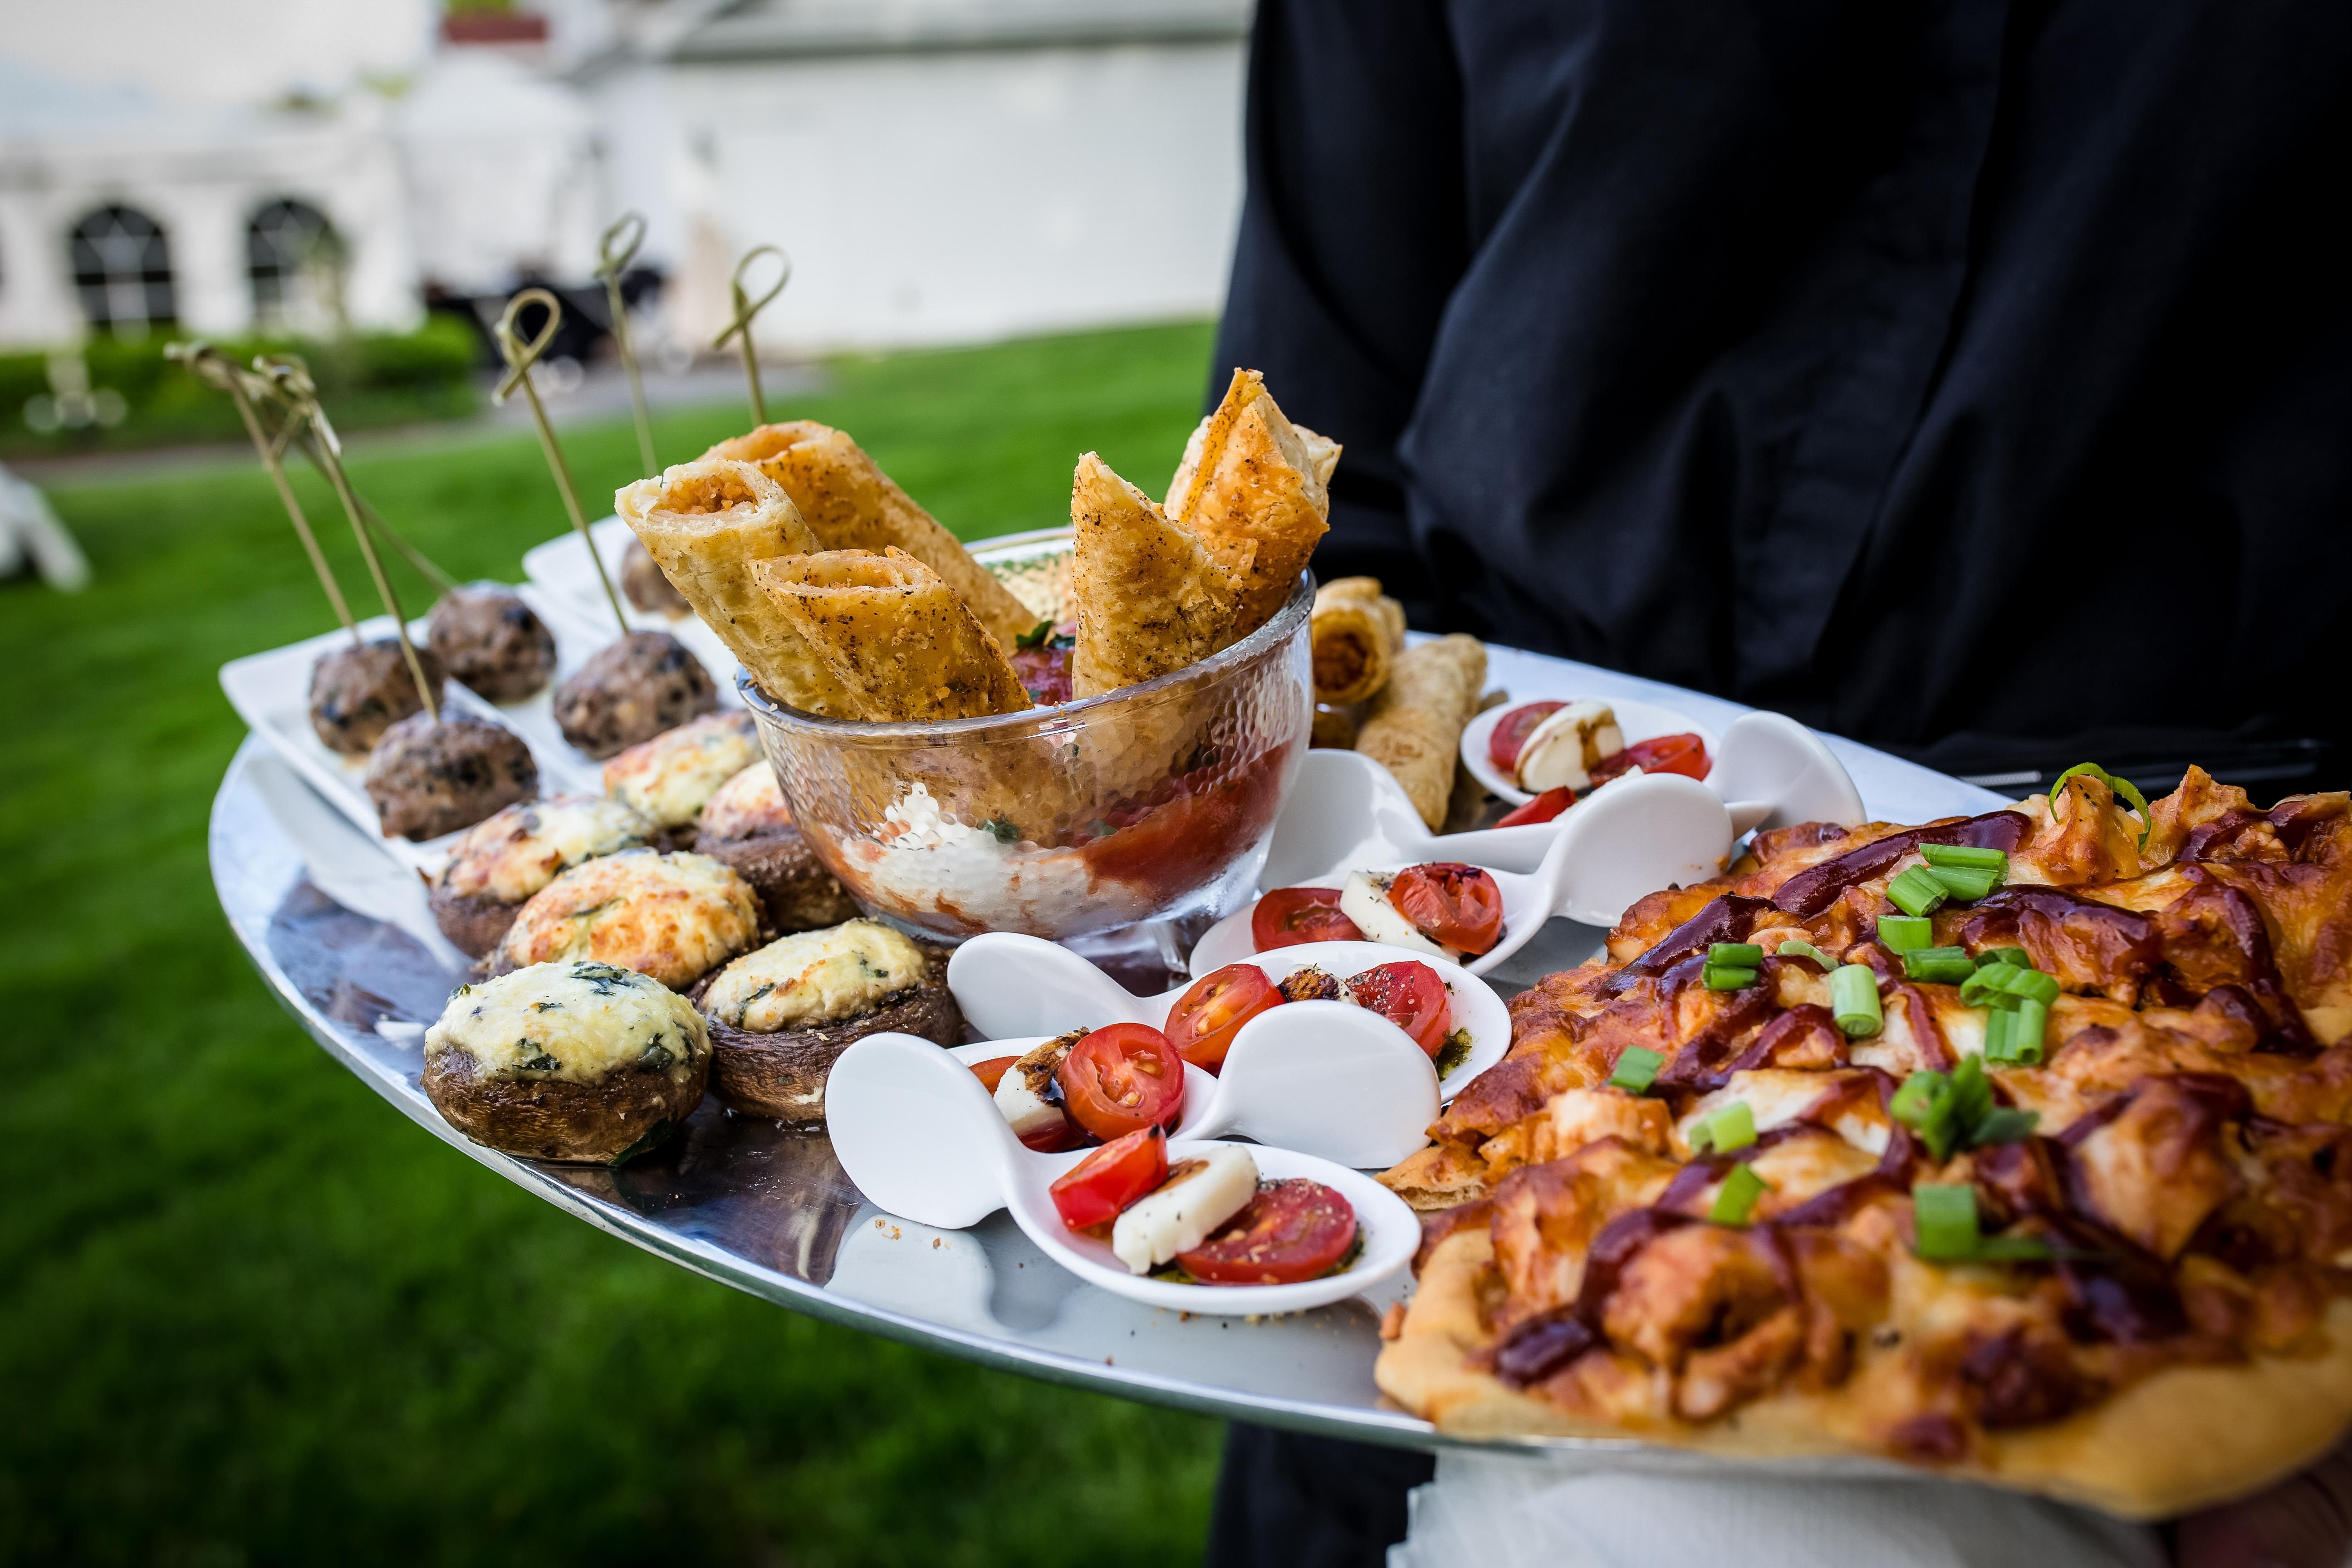 What Are Weddings Without Food Let Us Help Cater Your Next Wedding With Our Outstanding Venues Staff And Food Wedding Food Amazing Food Best Wedding Venues